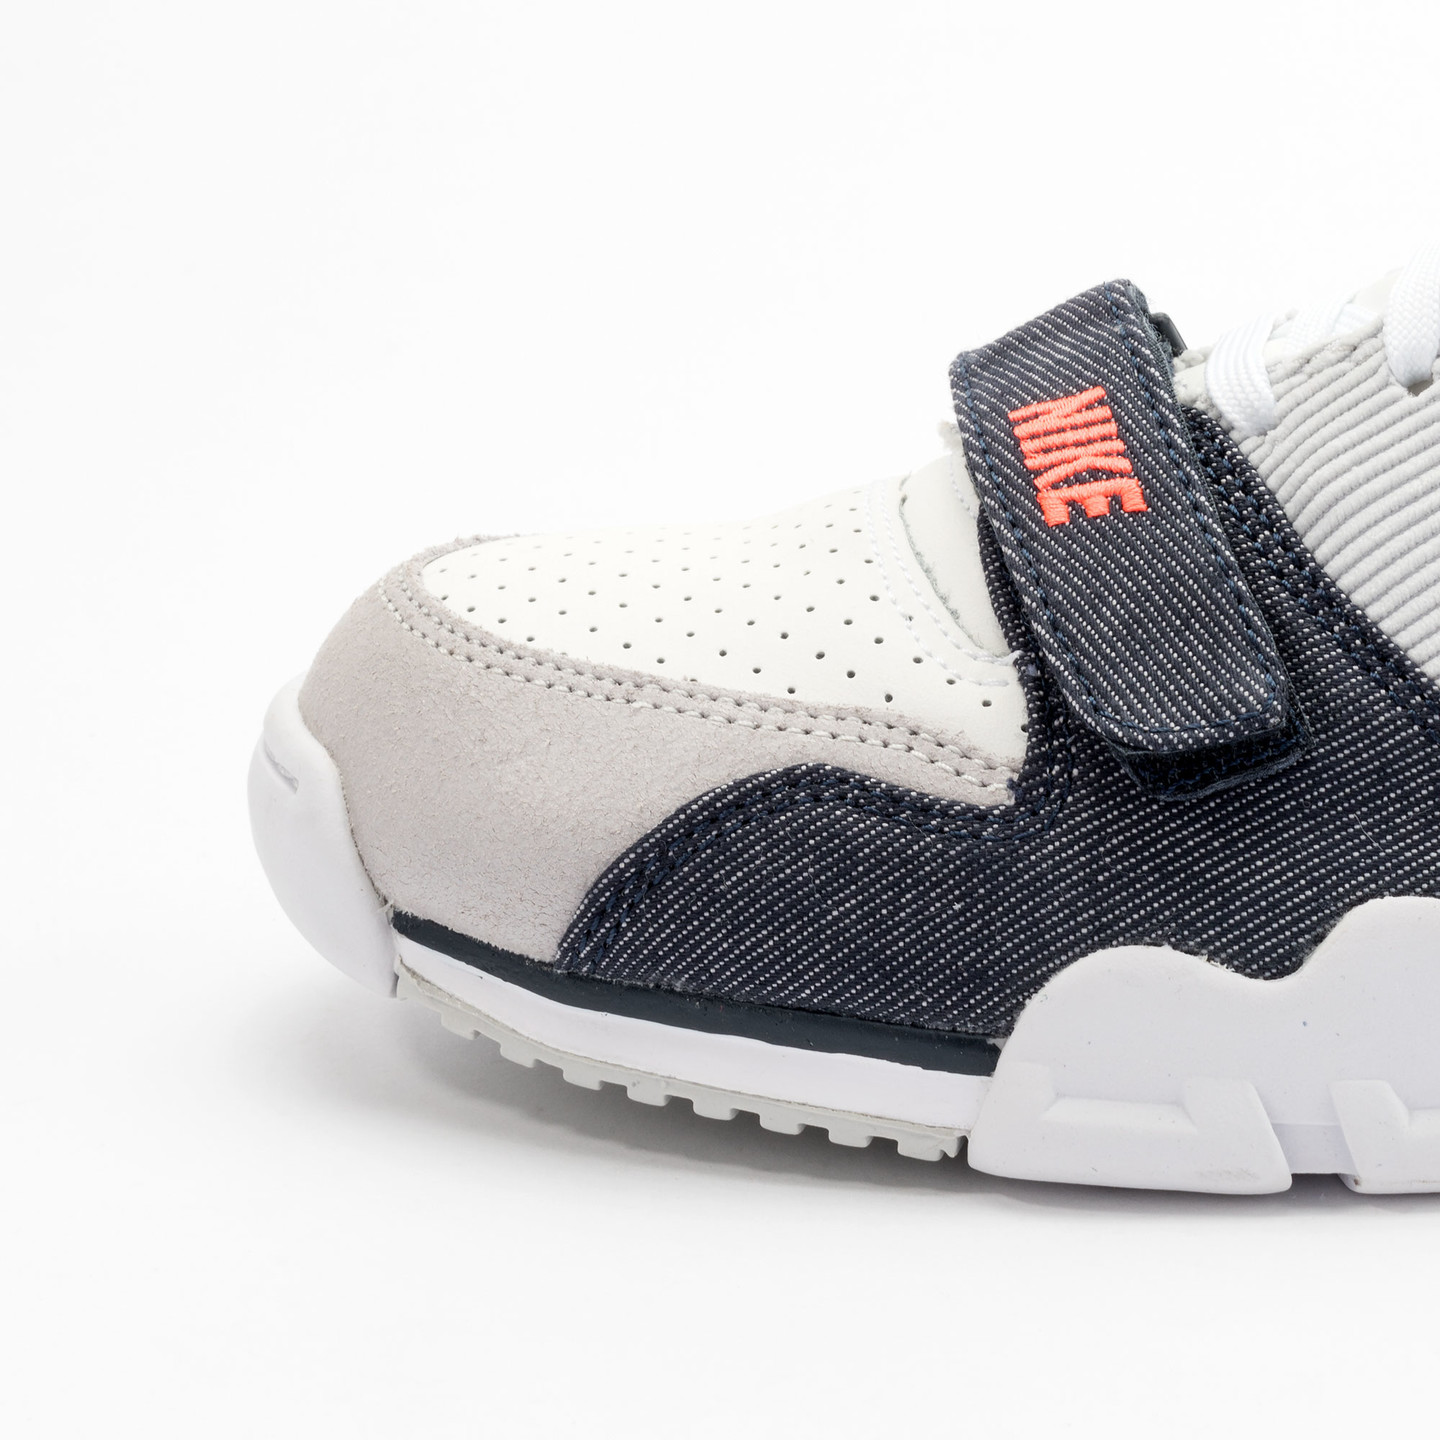 Nike Air Trainer 1 Mid White / Obsidian / Pure Platinum 317554-103-45.5